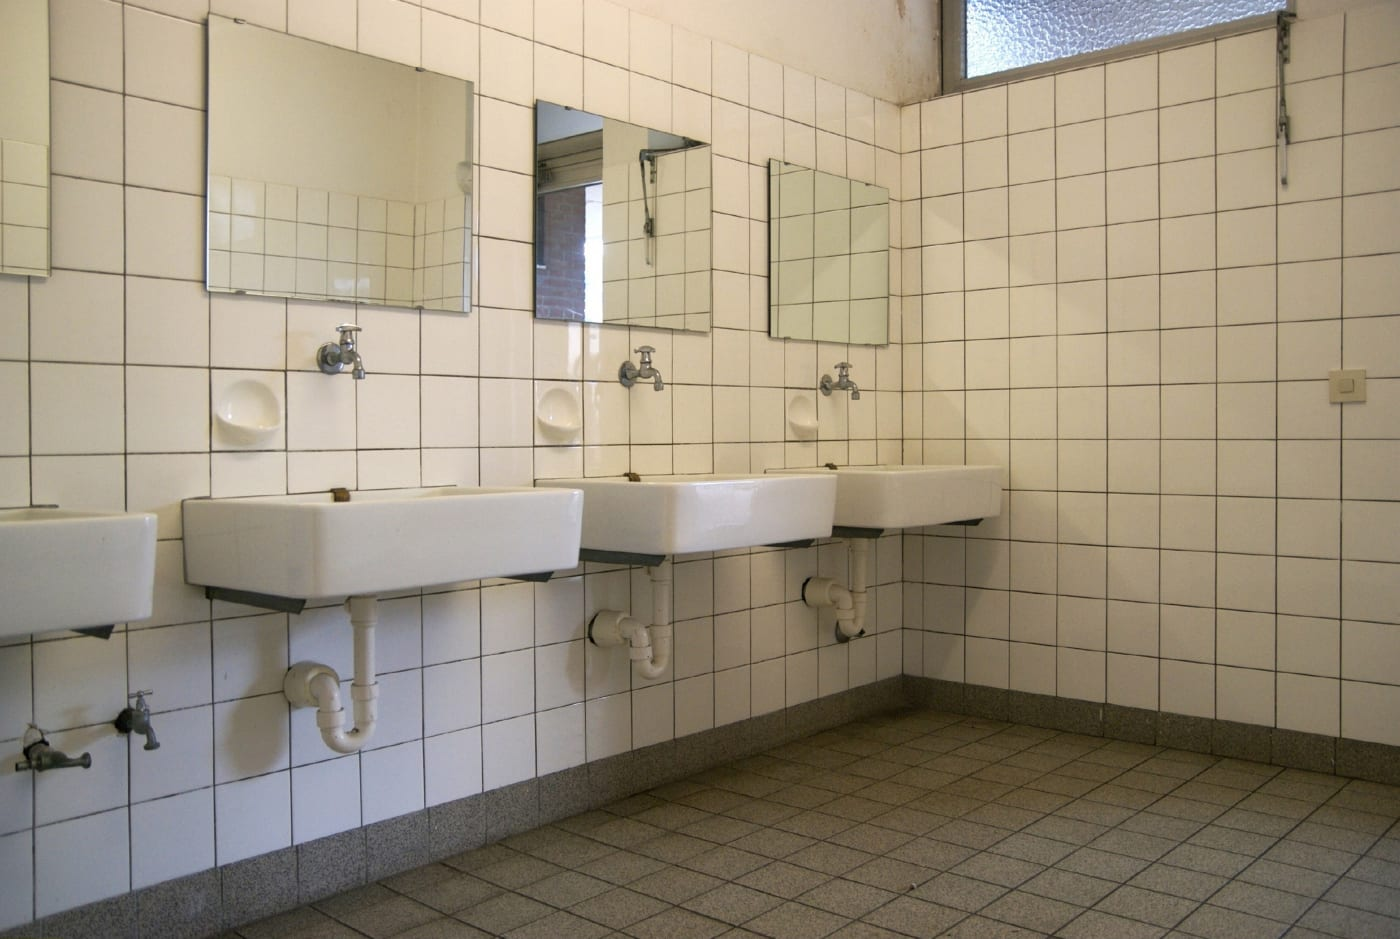 full time primary school, bathroom for pupils